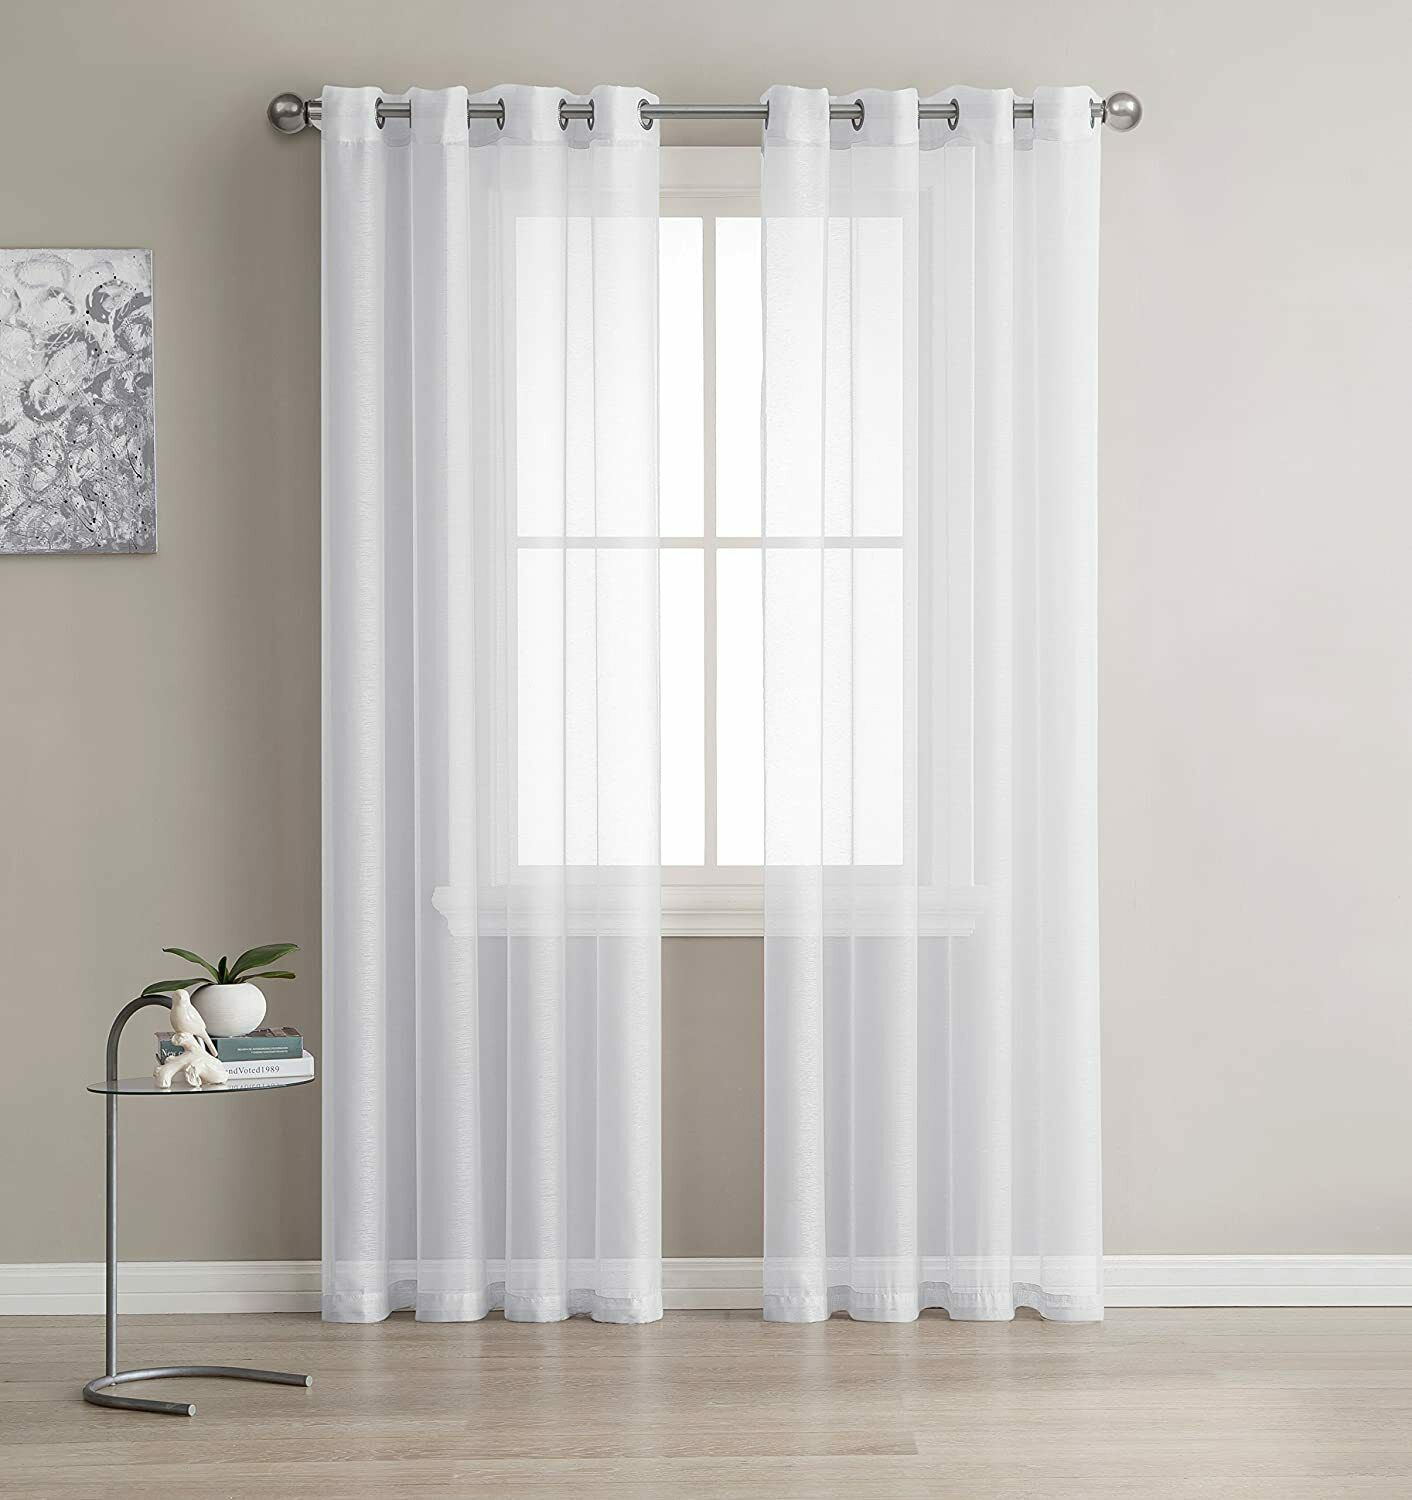 Grommet Semi Sheer Curtains 2 Pieces Total Size 108 Inch Wide 54 Inch Each For Sale Online Ebay